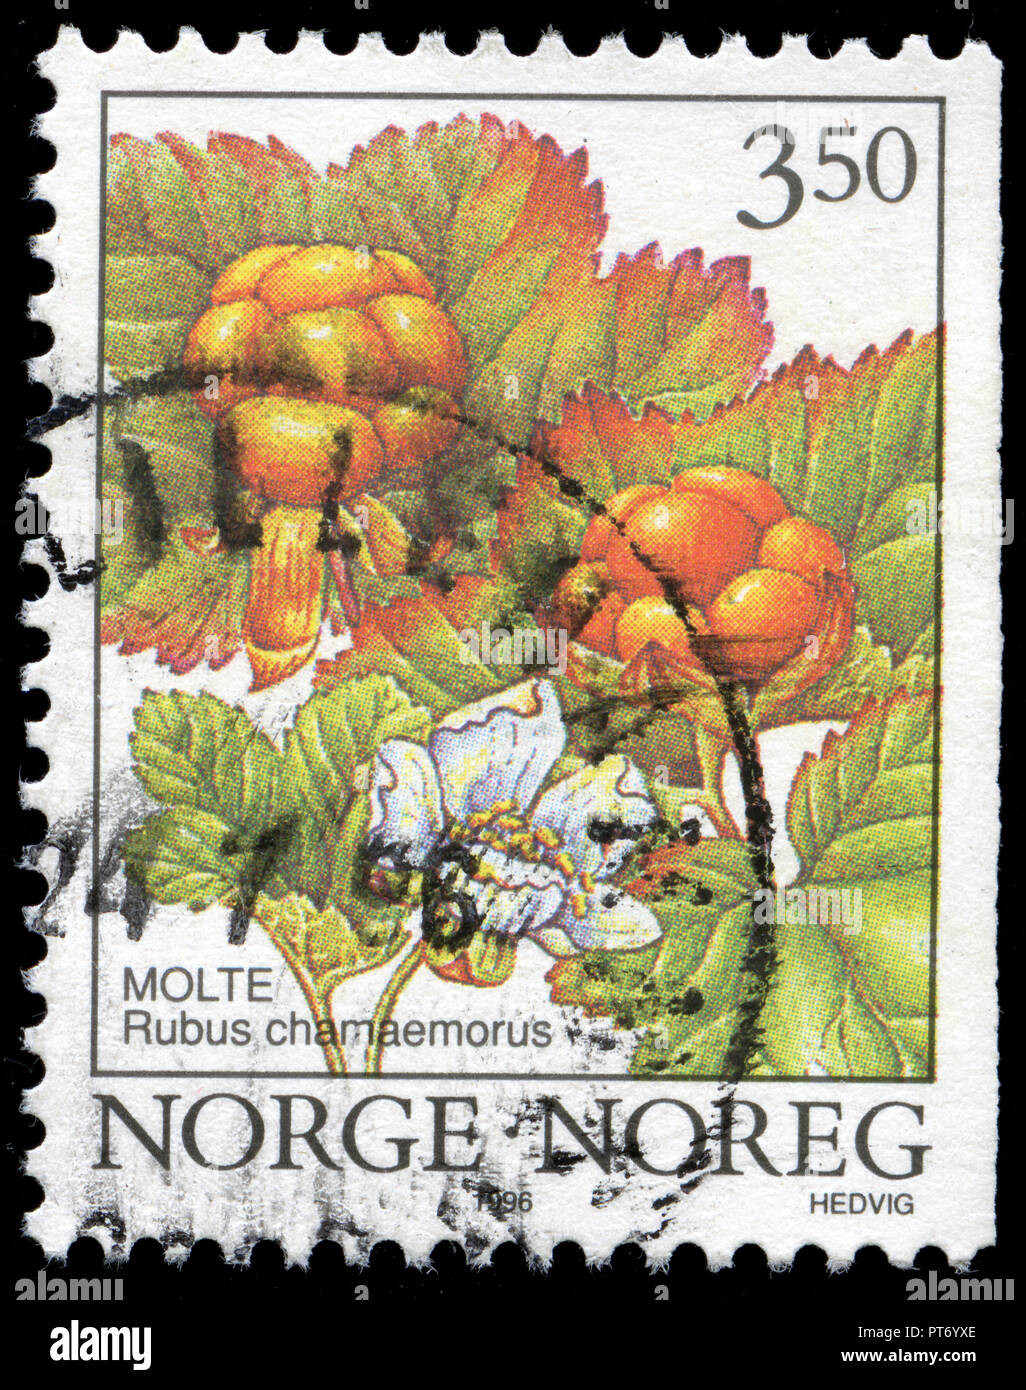 Postmarked stamp from Norway in the Wild Berries series issued in Stock Photo